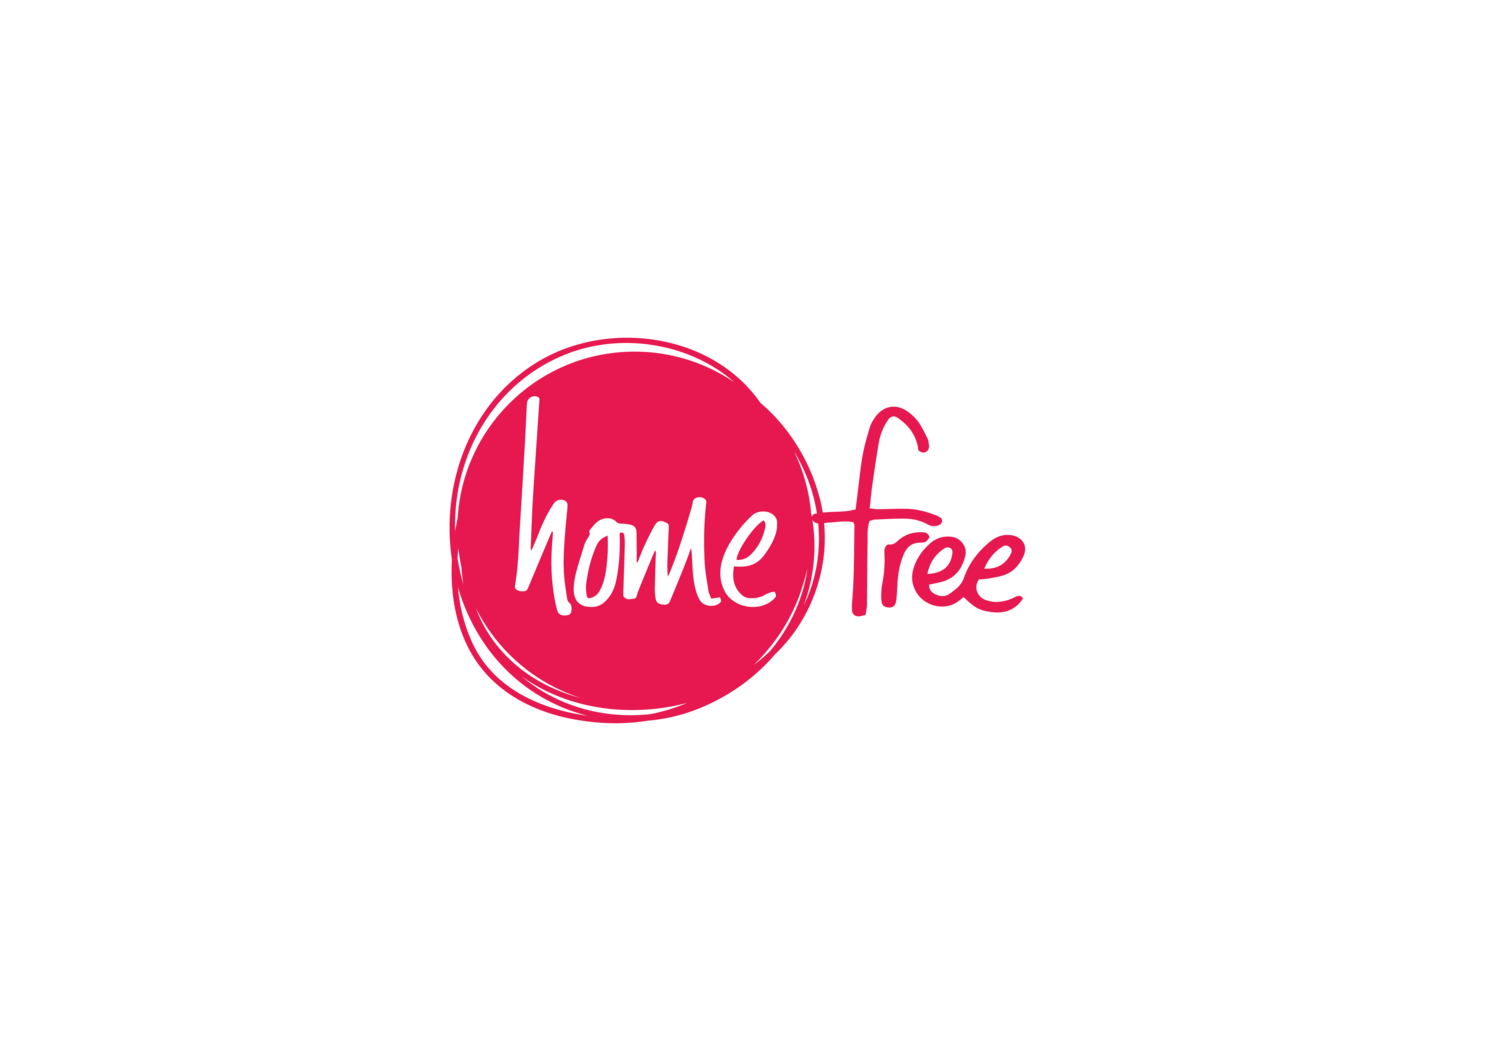 Home Free - Changing the Way We Care